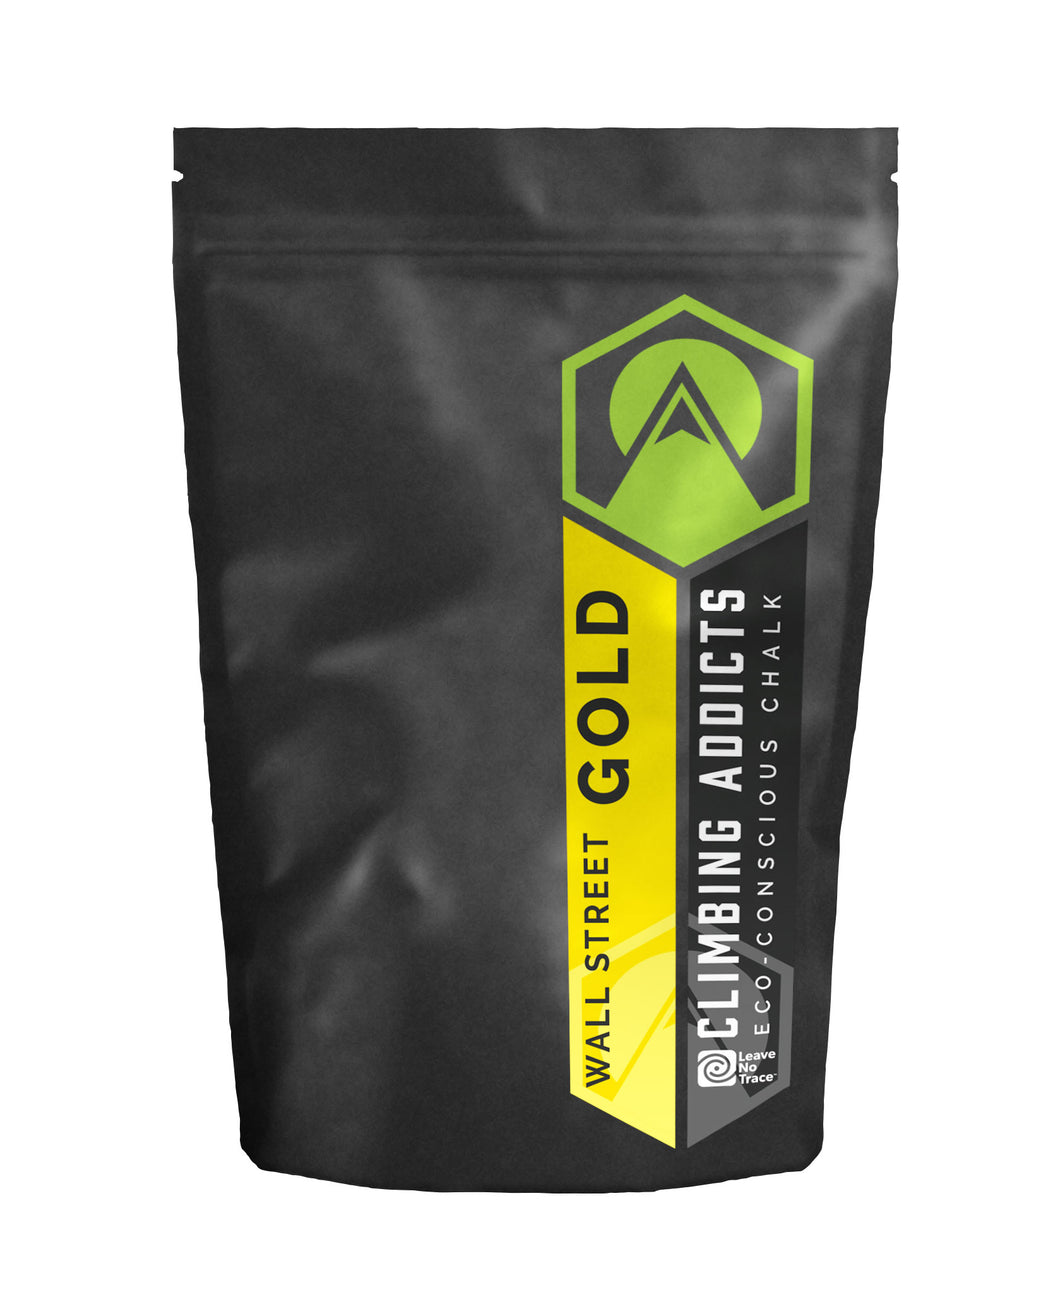 2 Pack Bundle - Gold | White Climbing Chalk